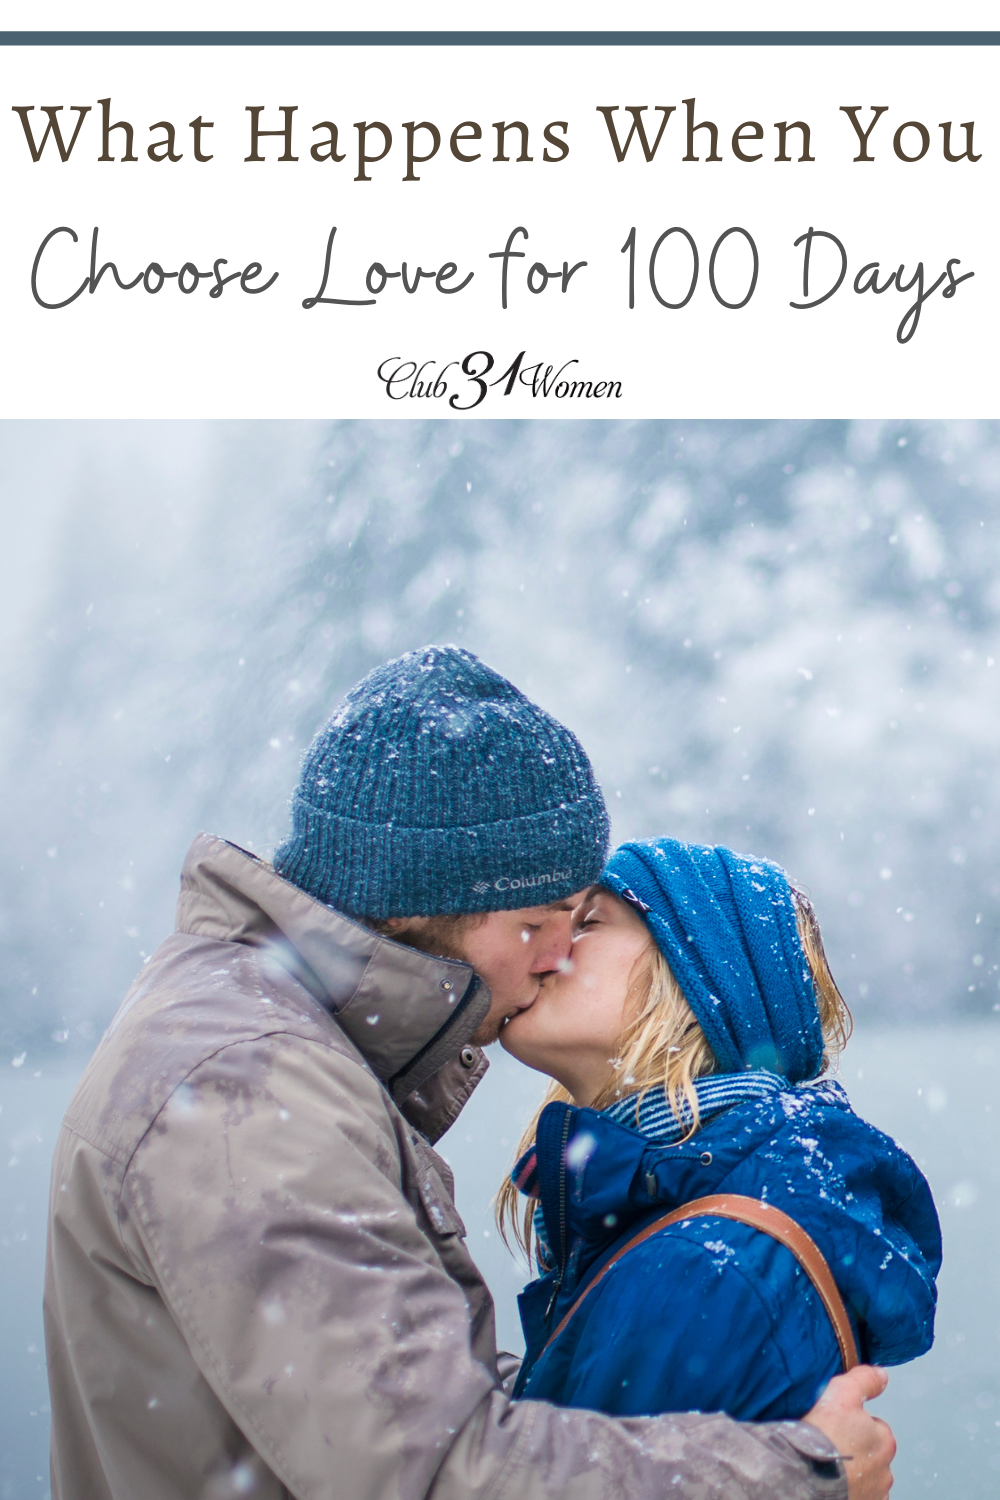 It is too easy to go through the motions and fail to be intentional in your marriage. What if you were to choose love for 100 days? via @Club31Women